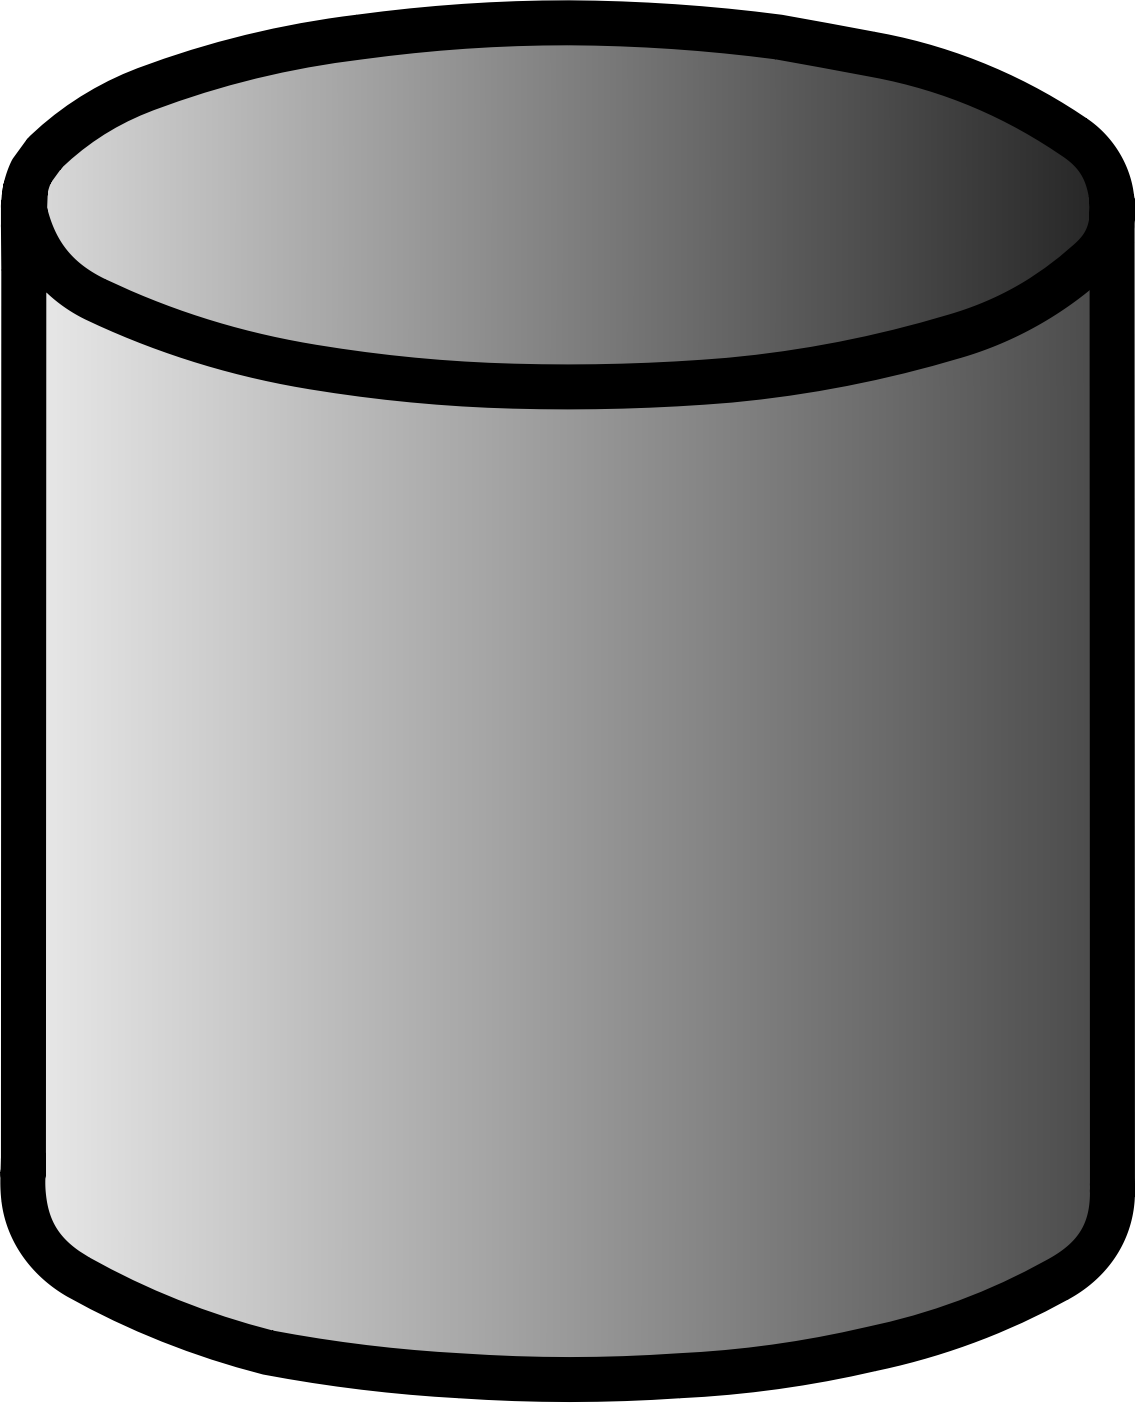 Clipart - Database Symbol Labelled